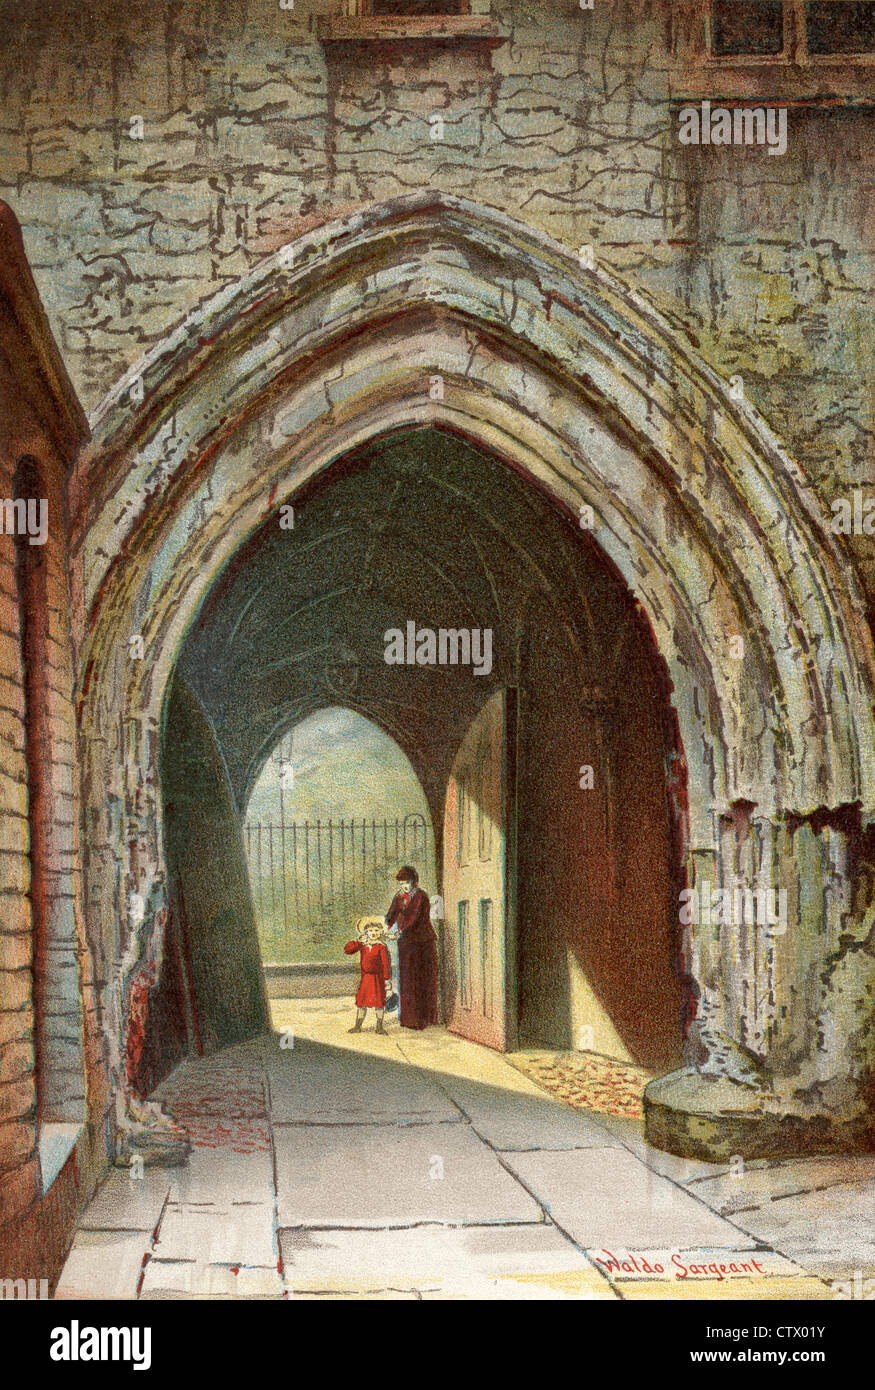 Vintage picture of old London. Inner Gateway, Dean's Yard, Westminster. After Waldo Sergeant - Stock Image